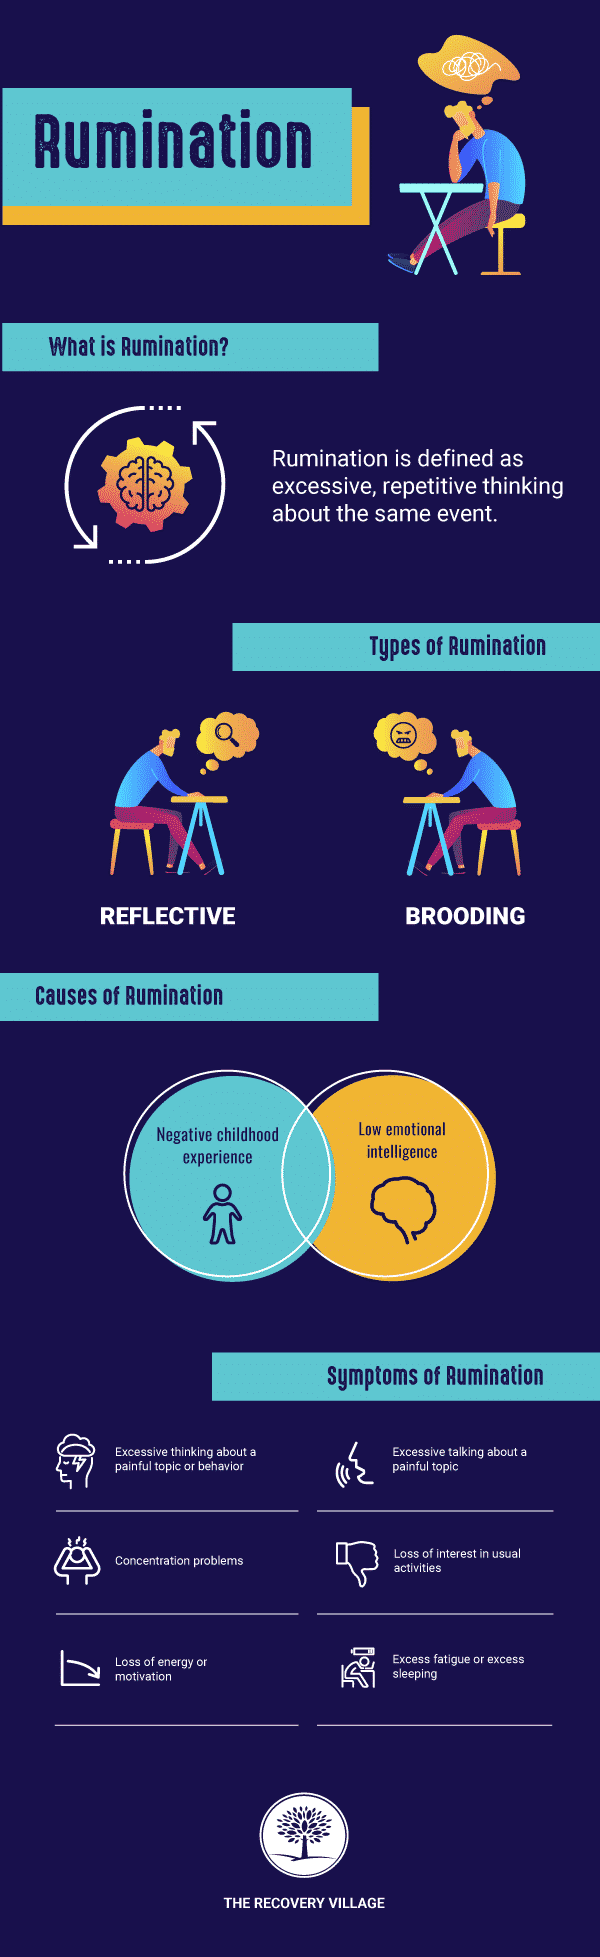 Infographic that details information about rumination